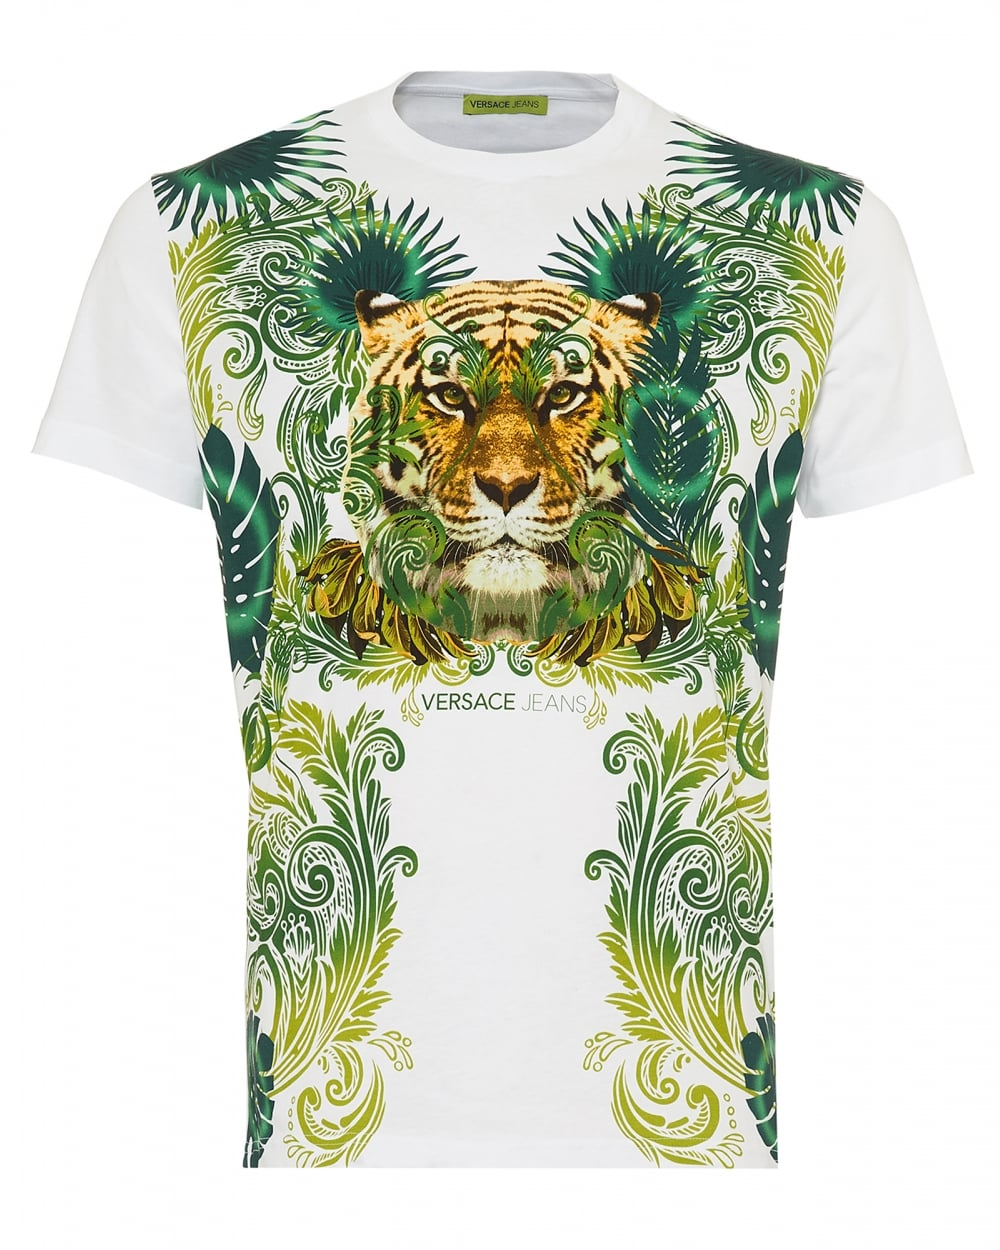 versace jeans mens jungle tiger print t shirt slim fit white tee. Black Bedroom Furniture Sets. Home Design Ideas